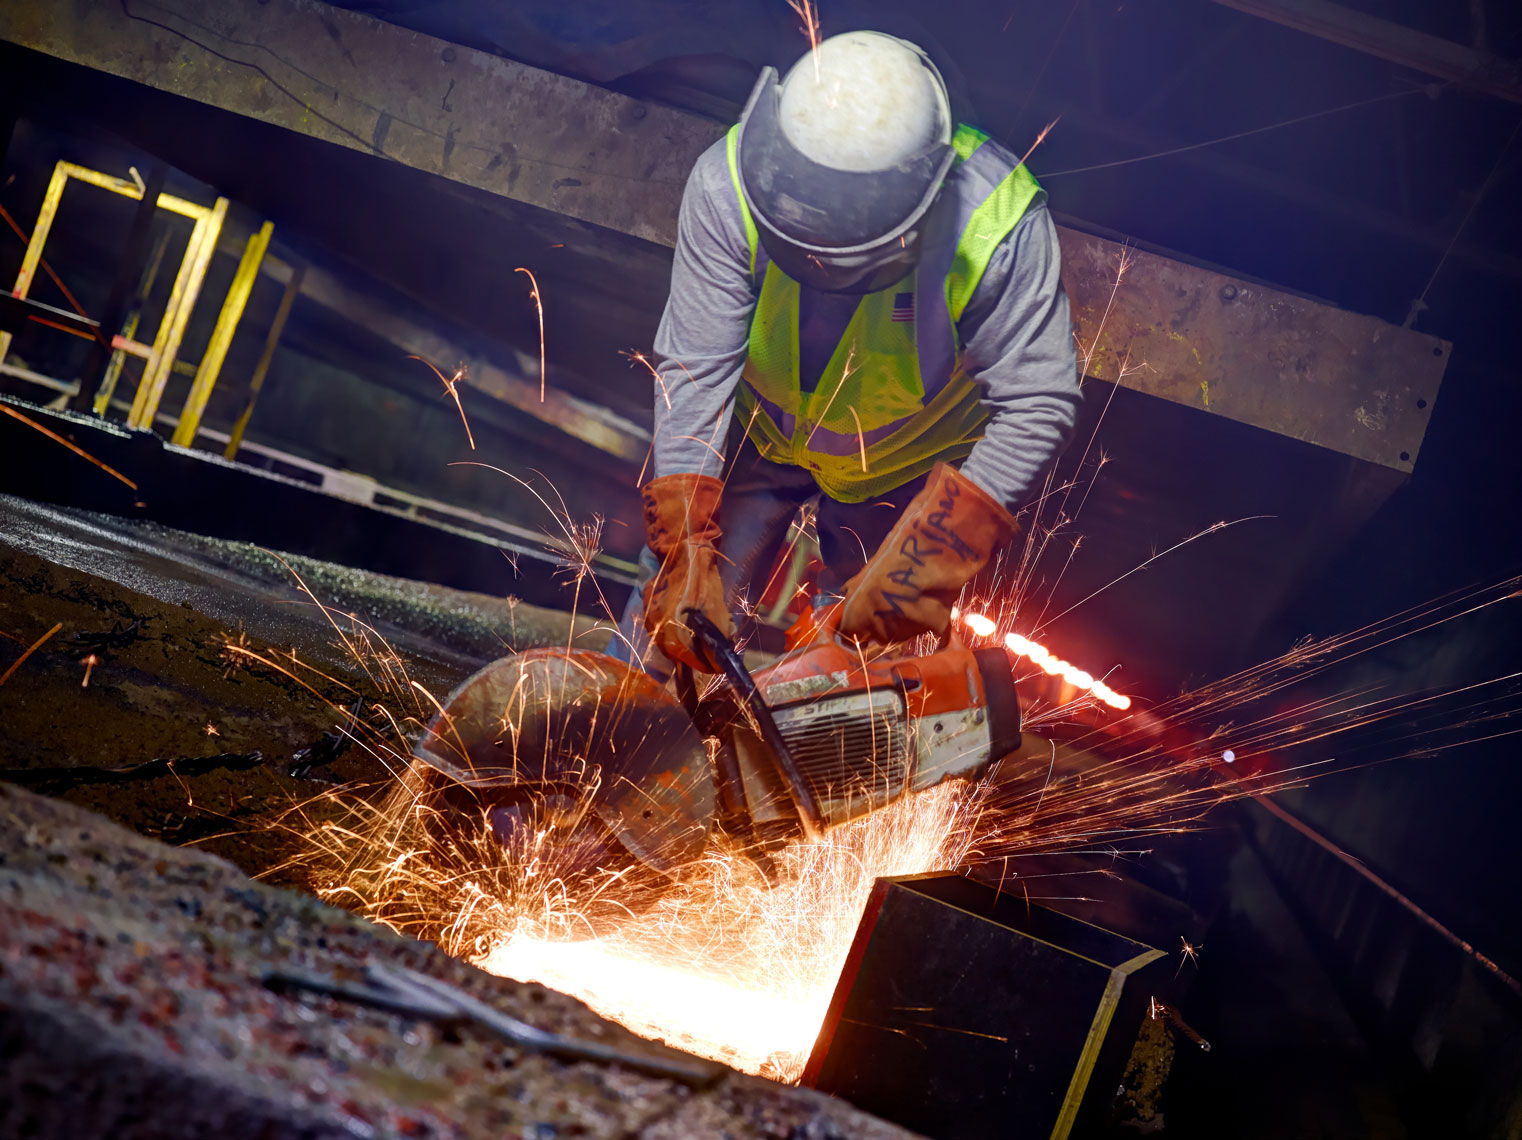 Fabcon Plant/Worker/ Lg saw/sparks flying/Indusrial photography